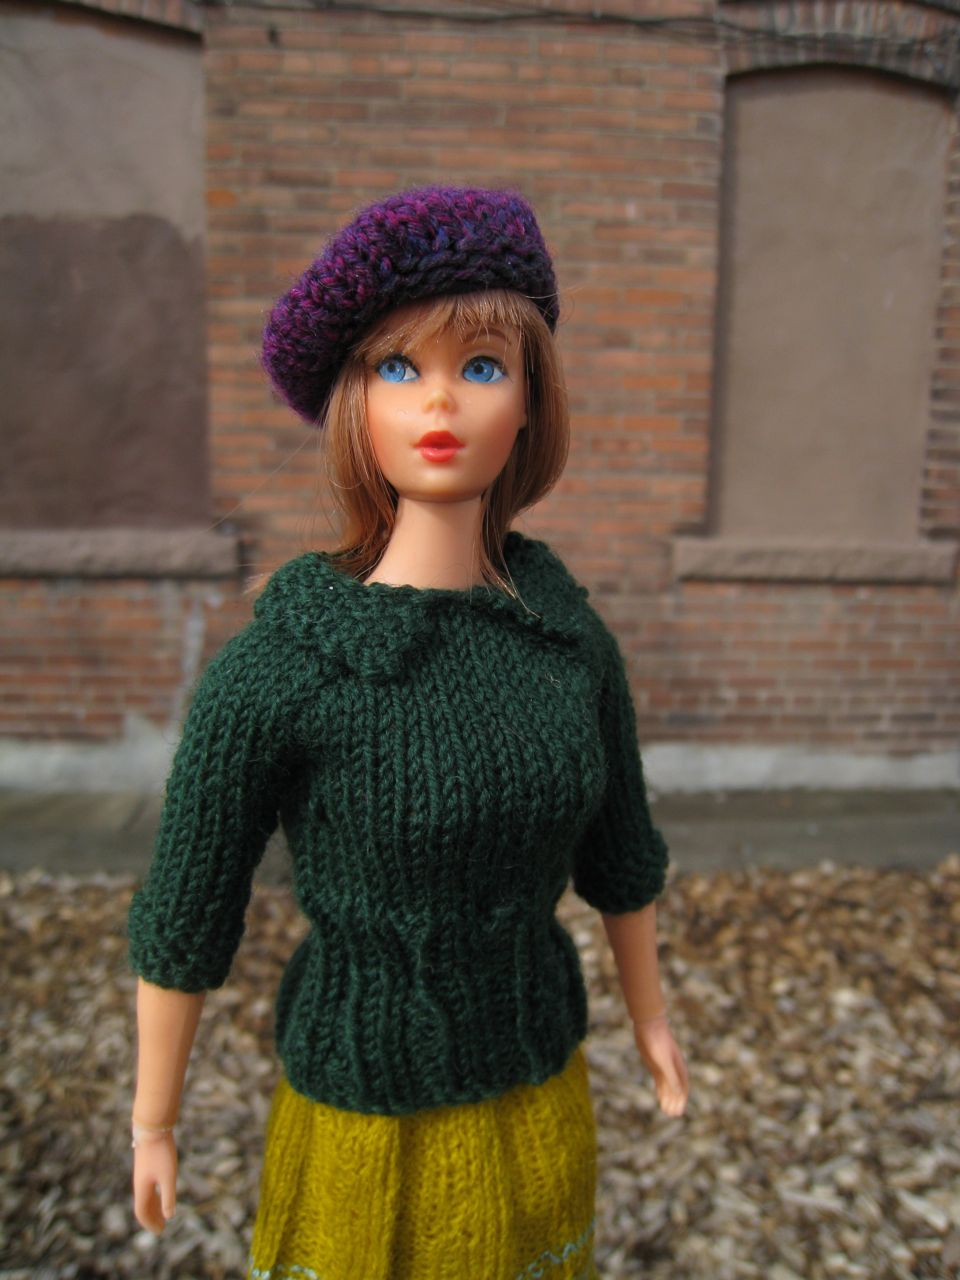 Best Barbie Knits: New Barbie Knitting Pattern